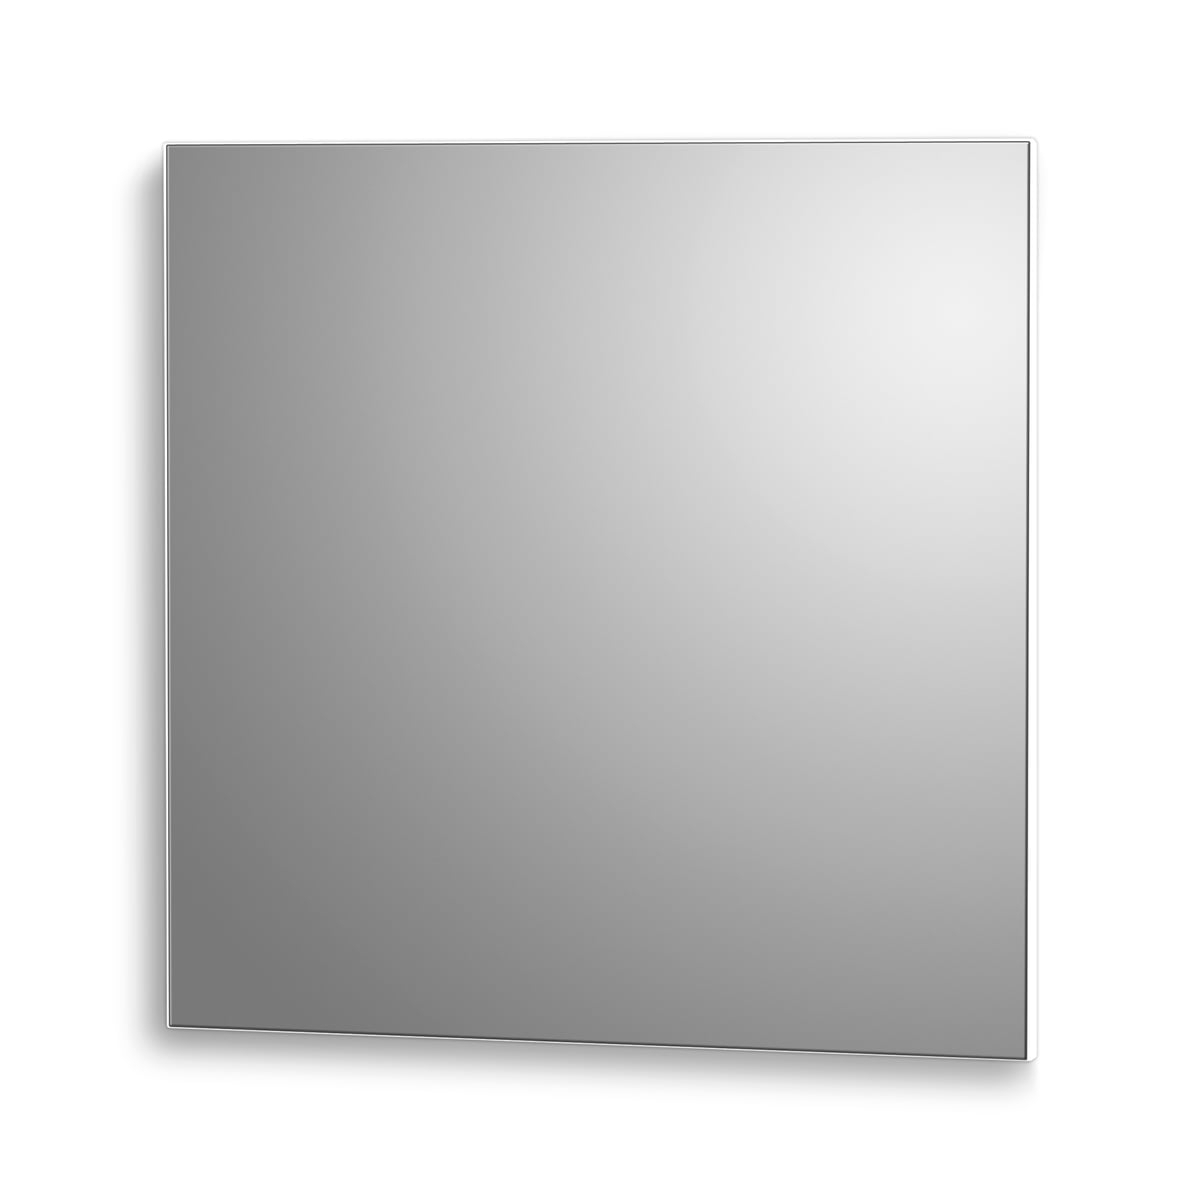 Most Popular Verti Copenhagen – Verti Mirror Mini Wall Mirror, 15 X 15 Cm, White In Mini Wall Mirrors (View 8 of 20)